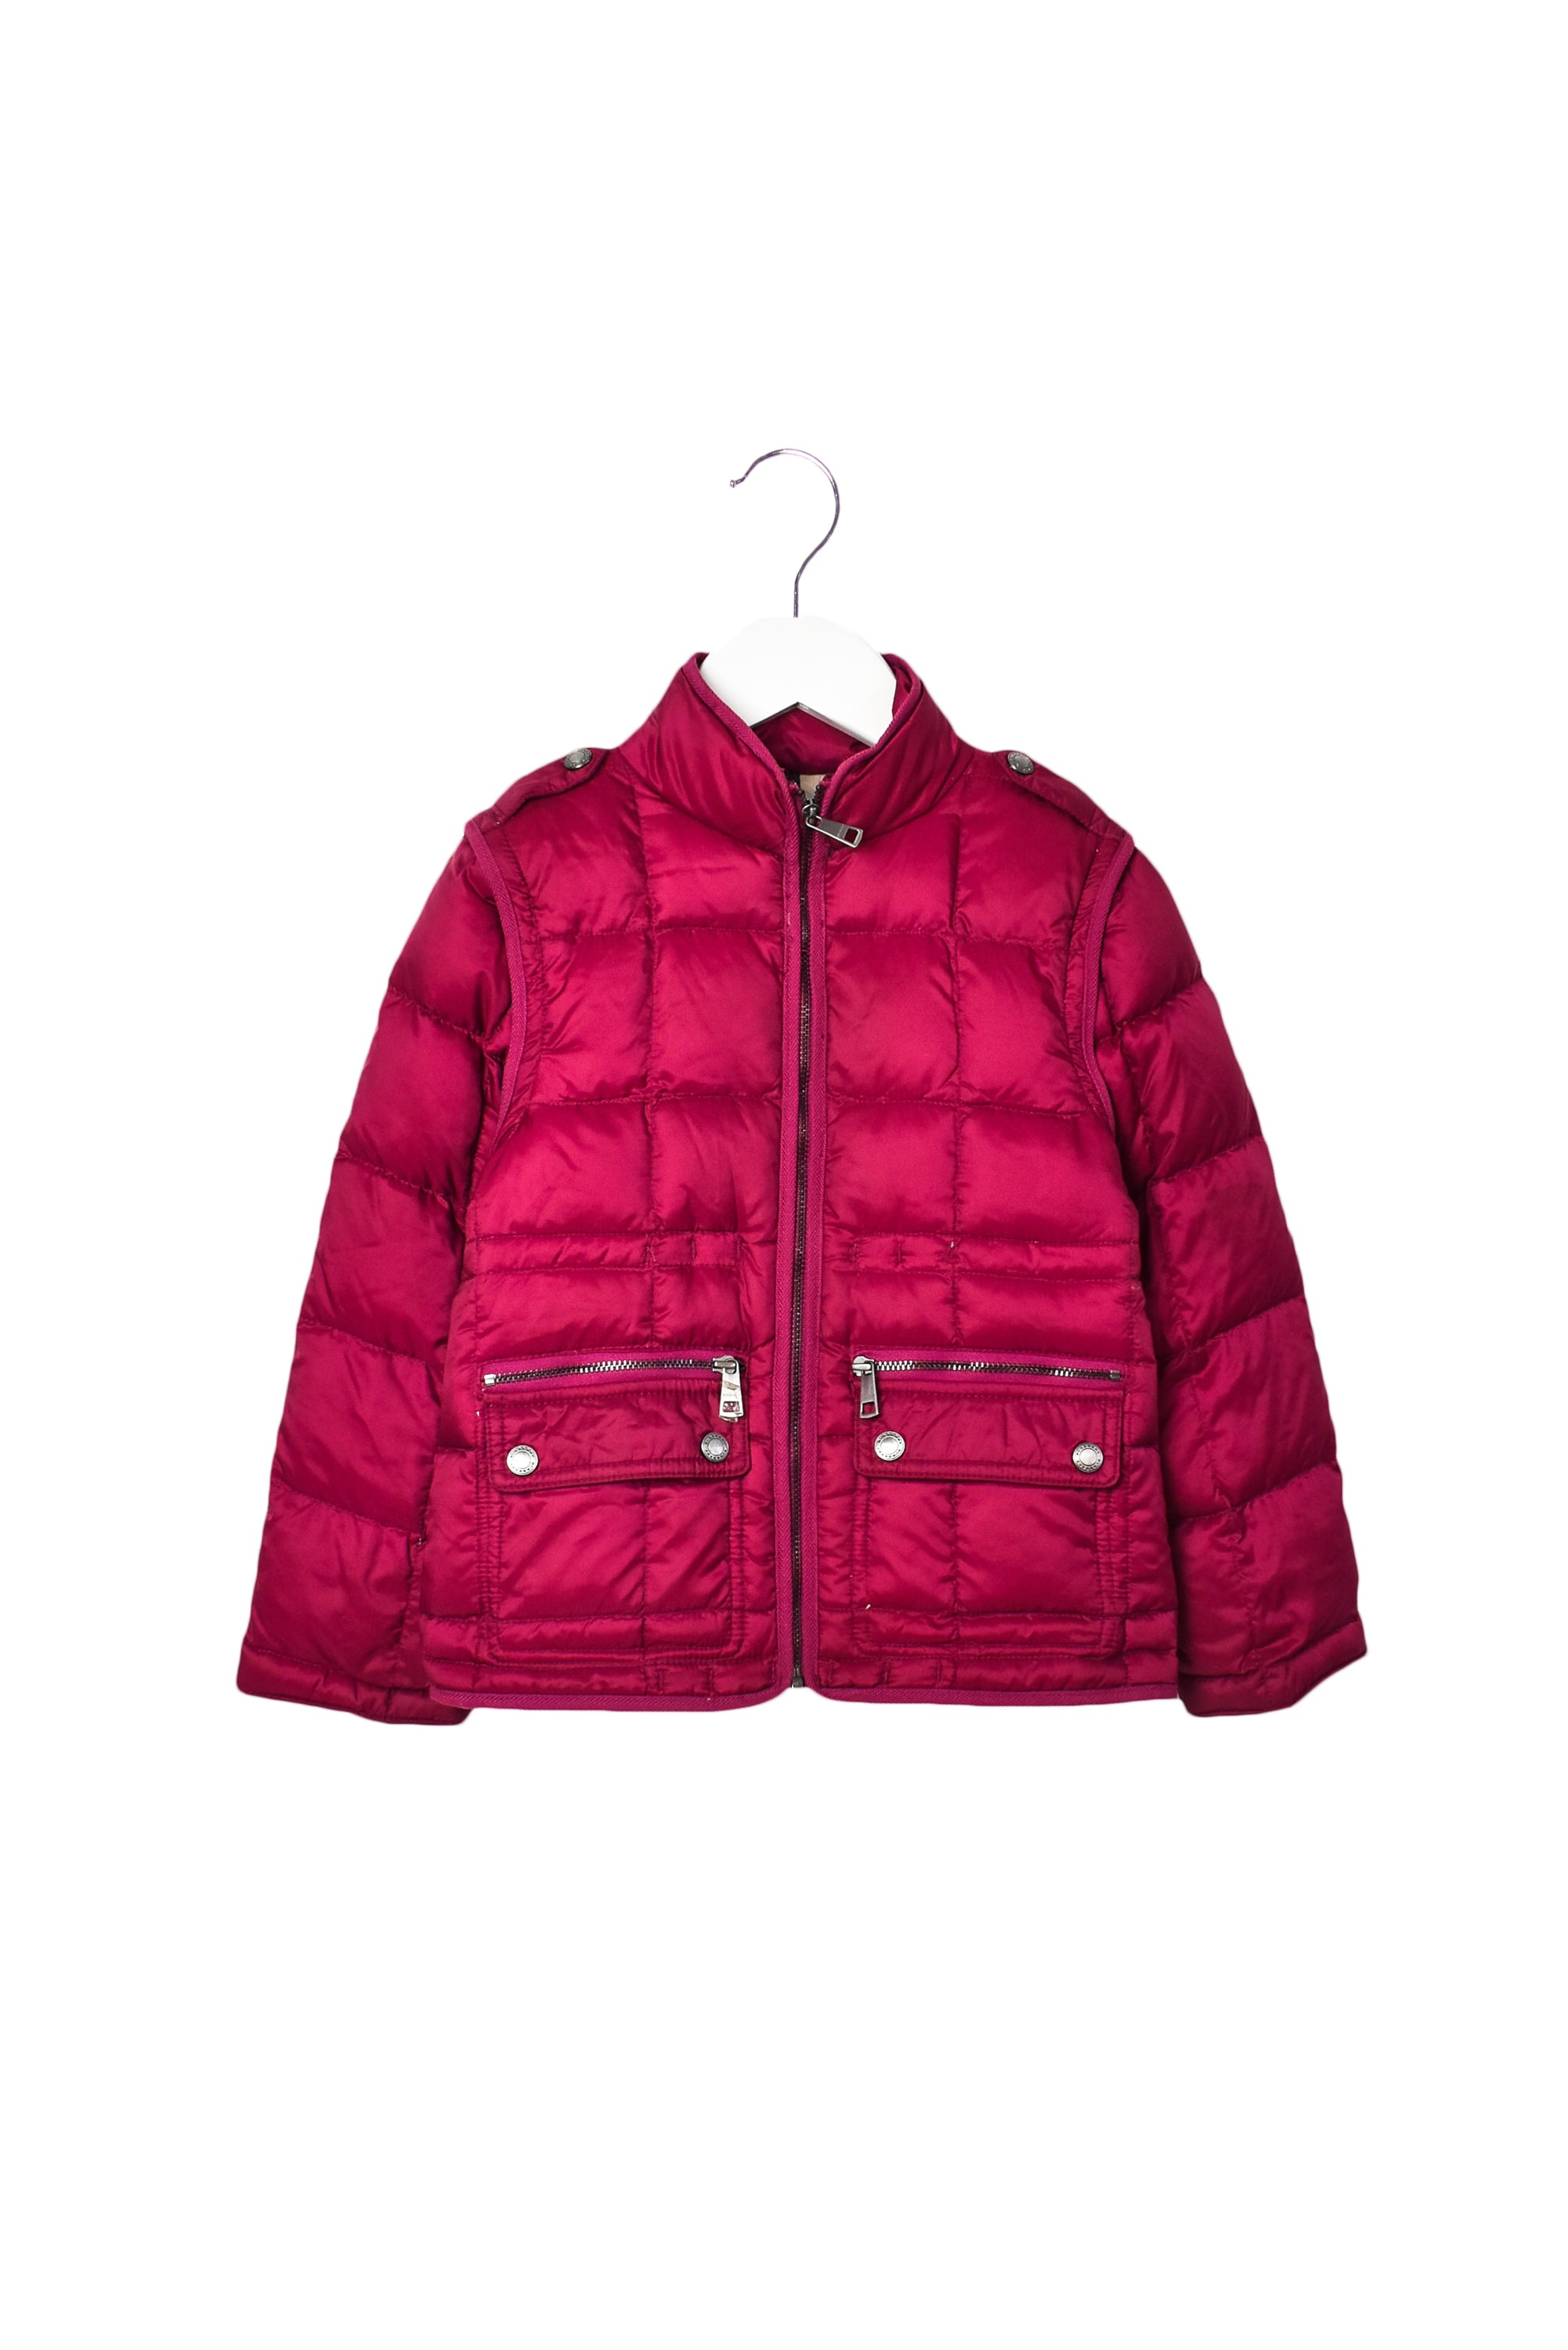 10007779 Burberry Kids~ Puffer Jacket/ Vest 6T at Retykle